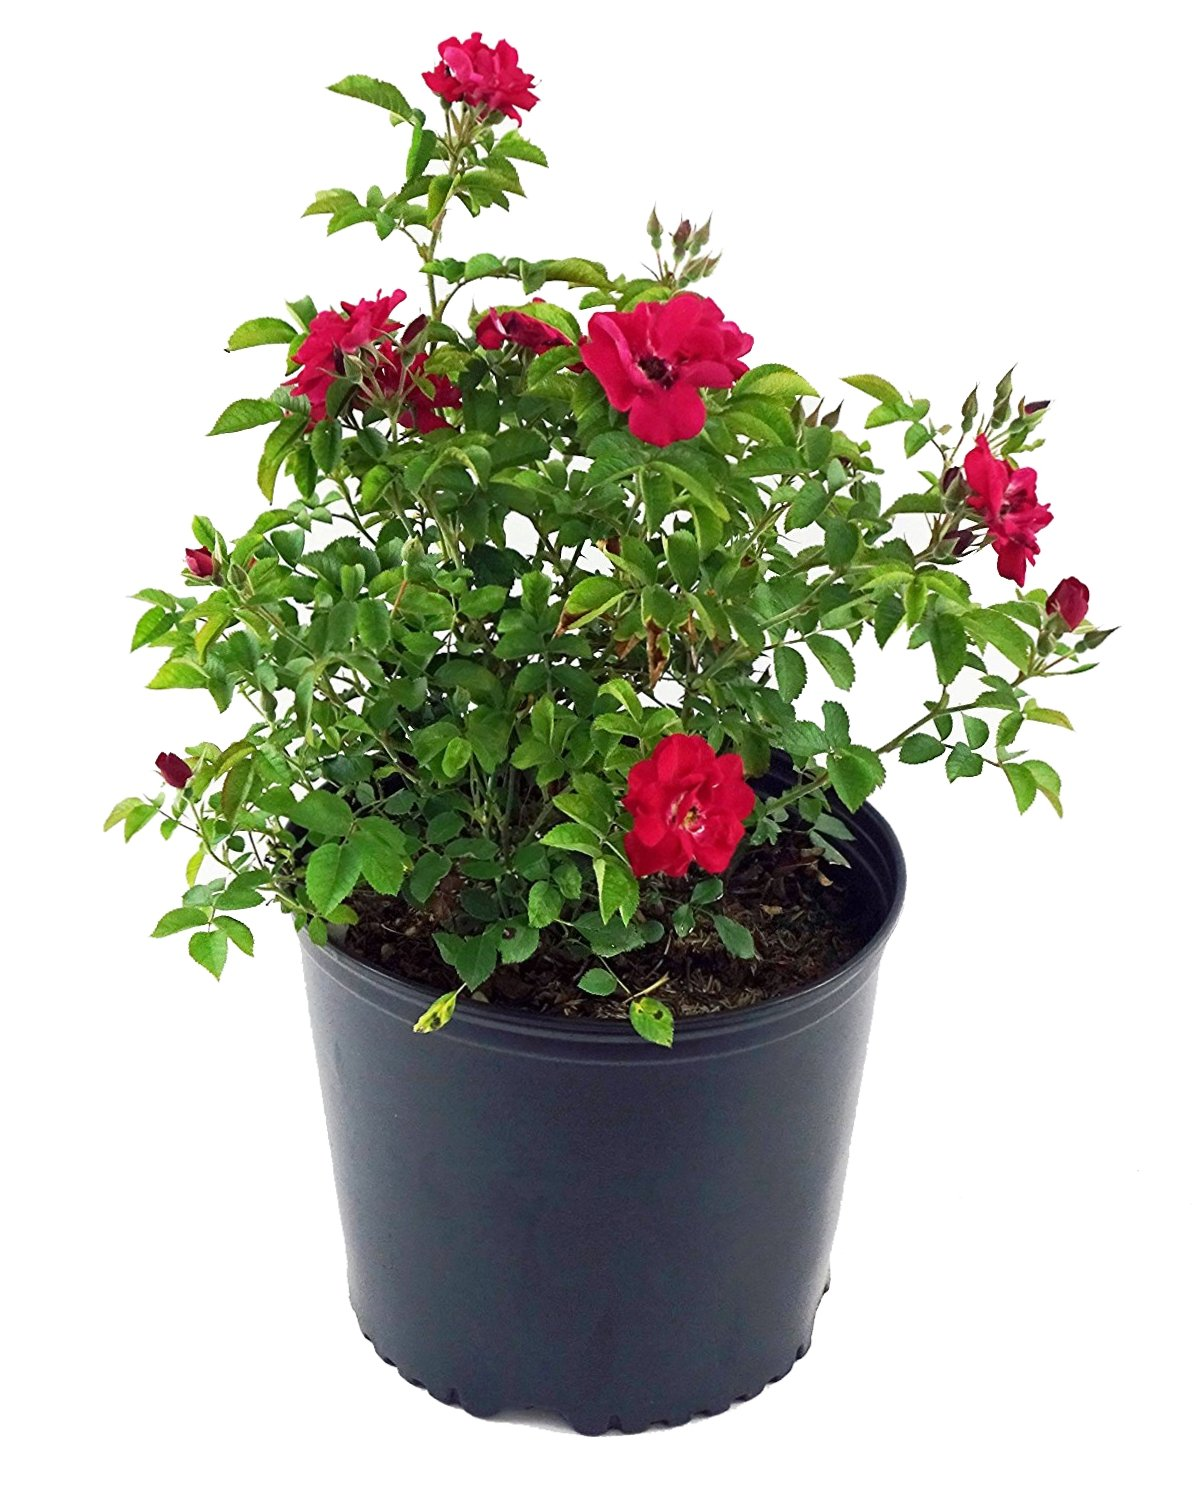 Rosa 'Blaze' (Climbing Rose) Rose, red Flowers, 3 - Size Container